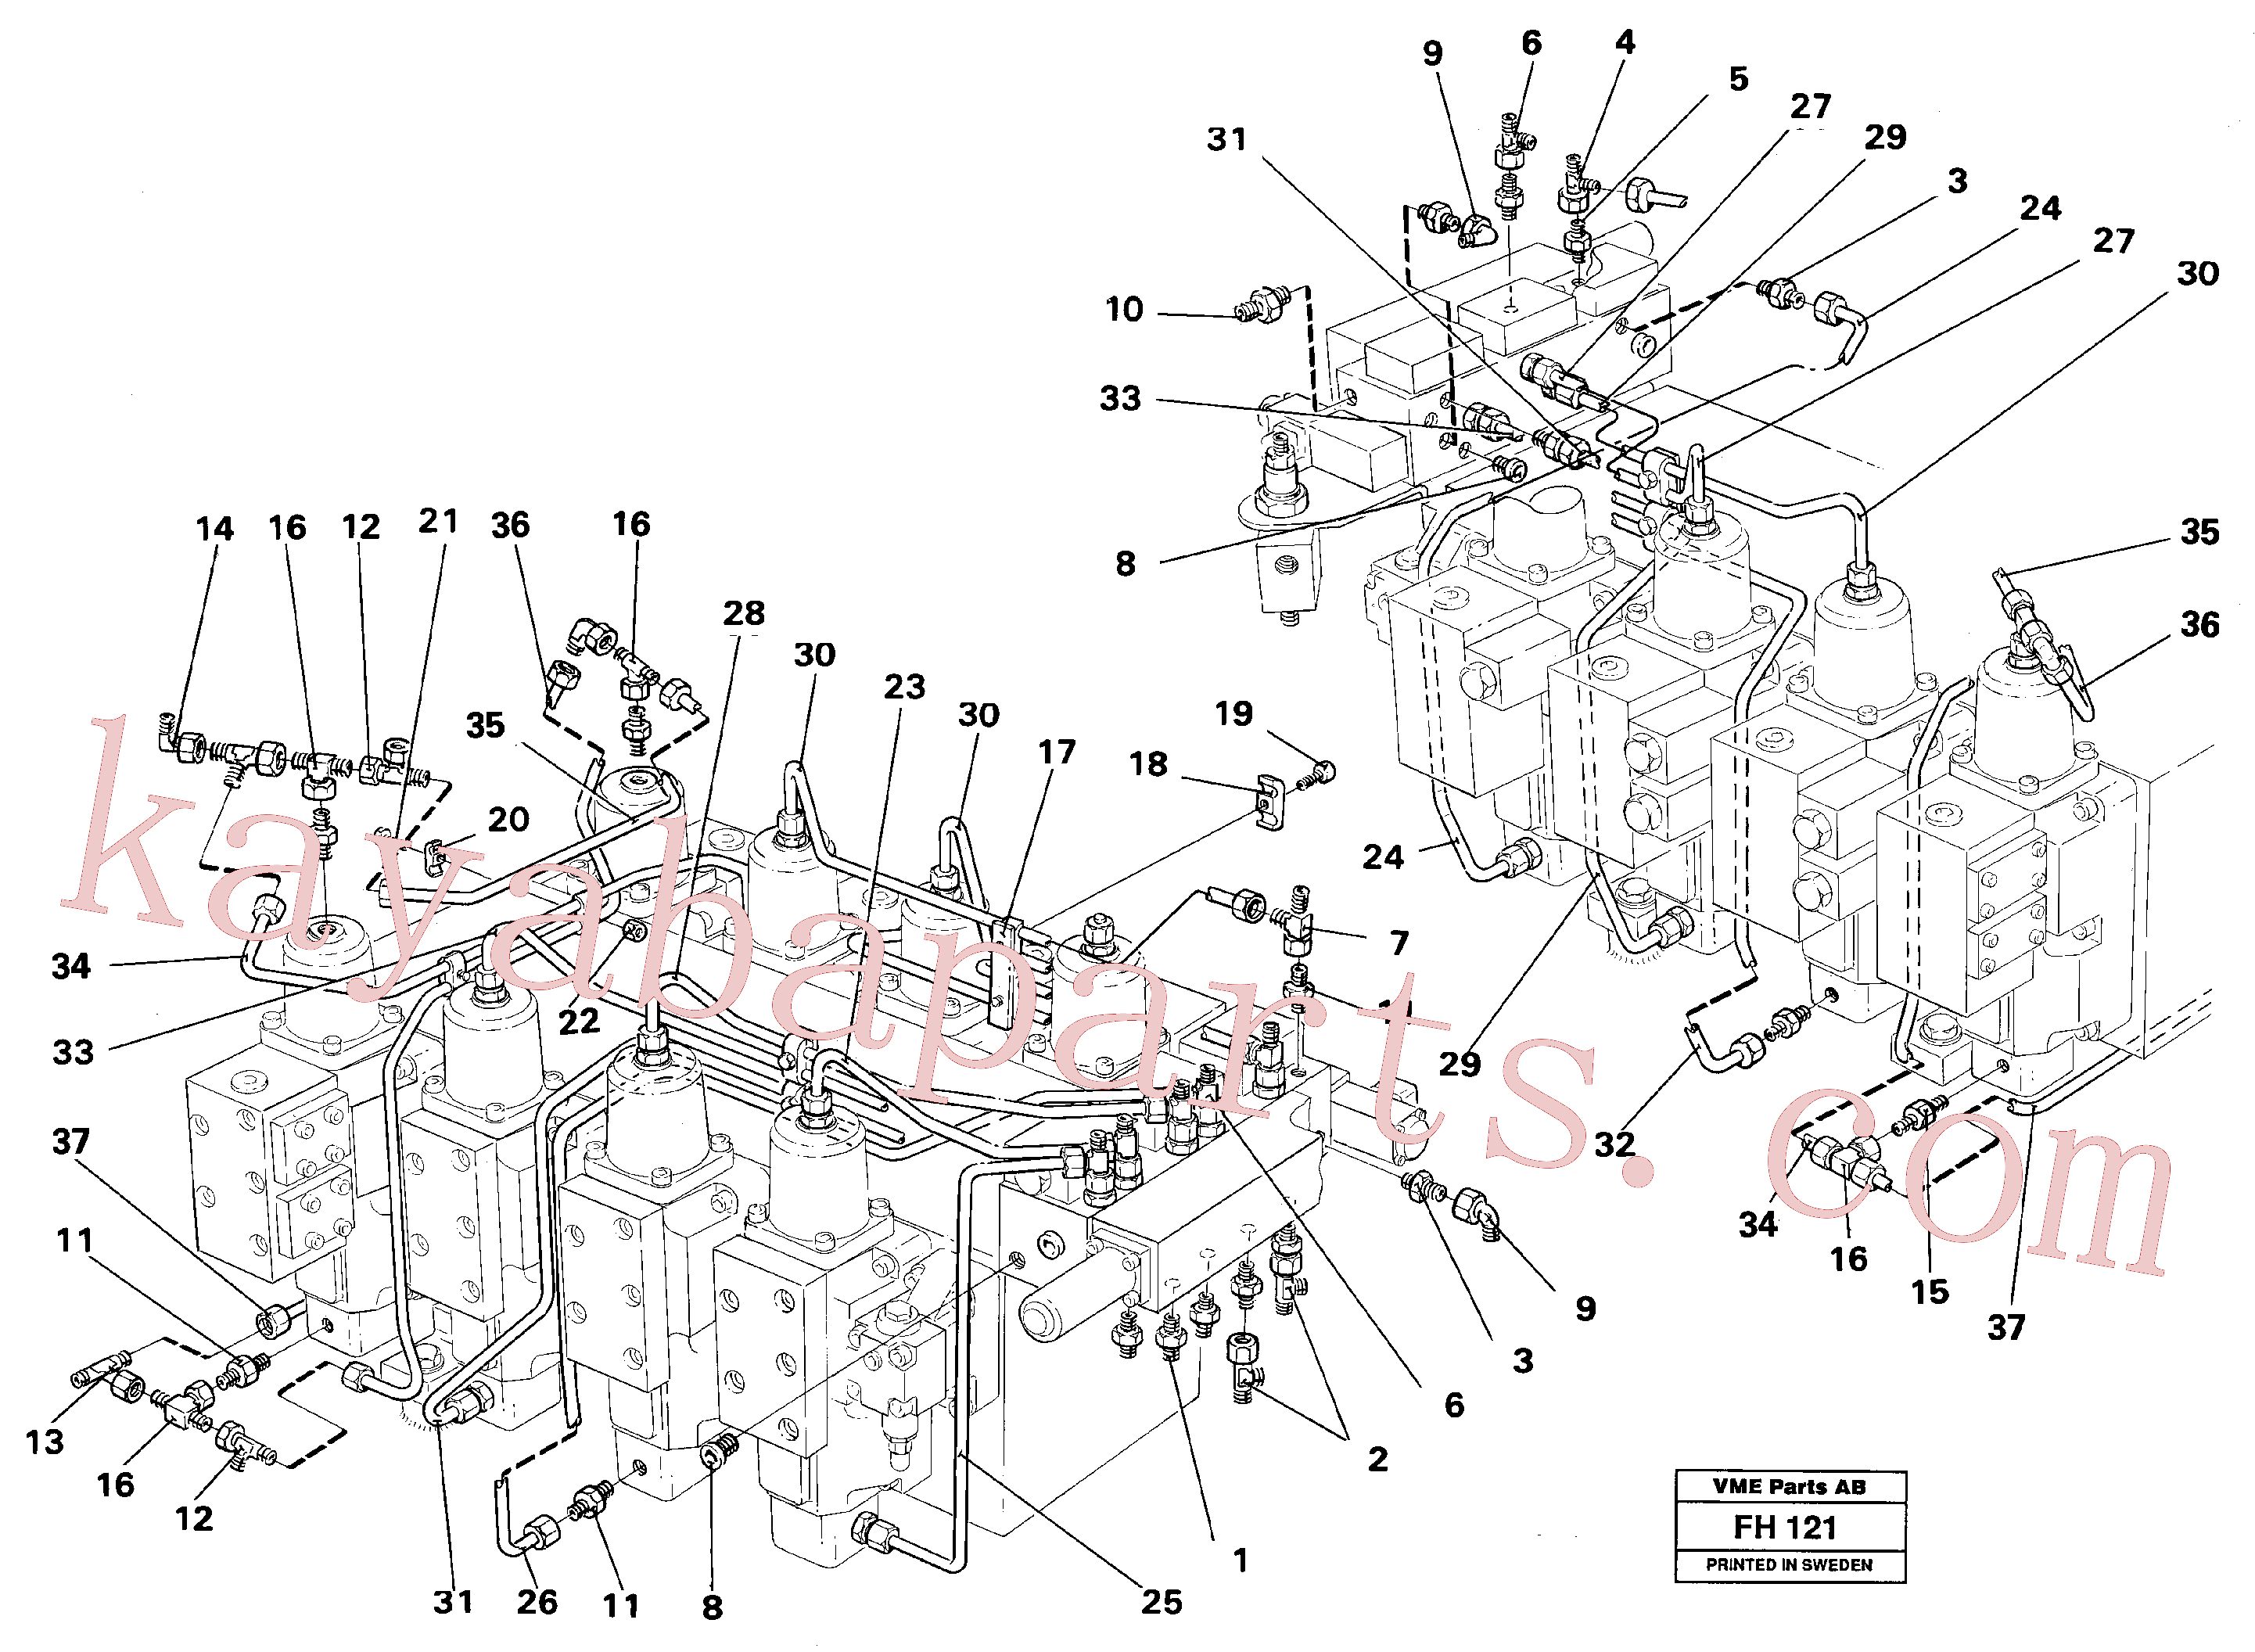 VOE13964042 for Volvo Main valve assembly, tubes connections(FH121 assembly)